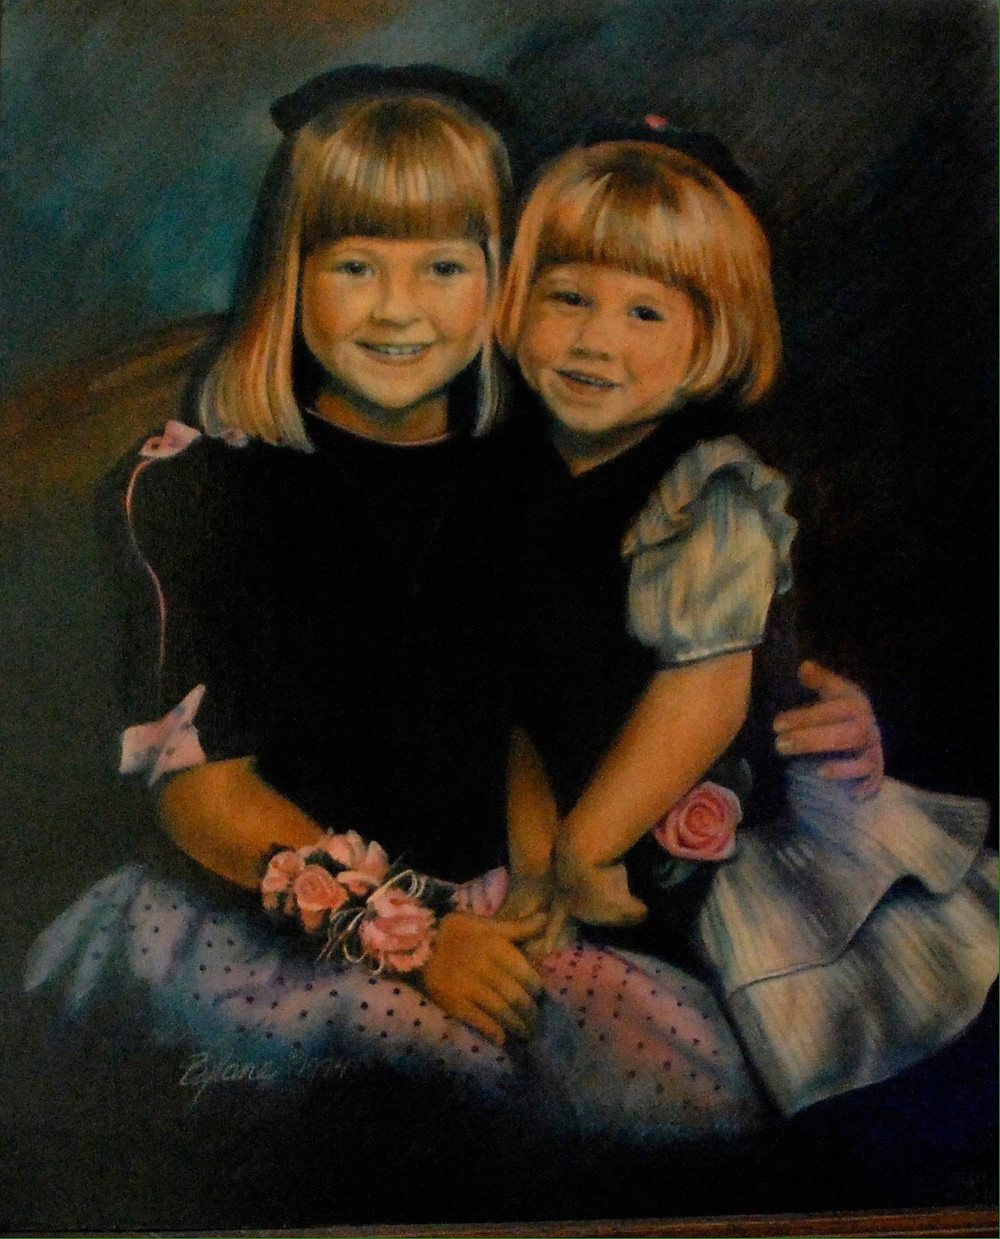 Portrait of 2 young sisters by Bjlane